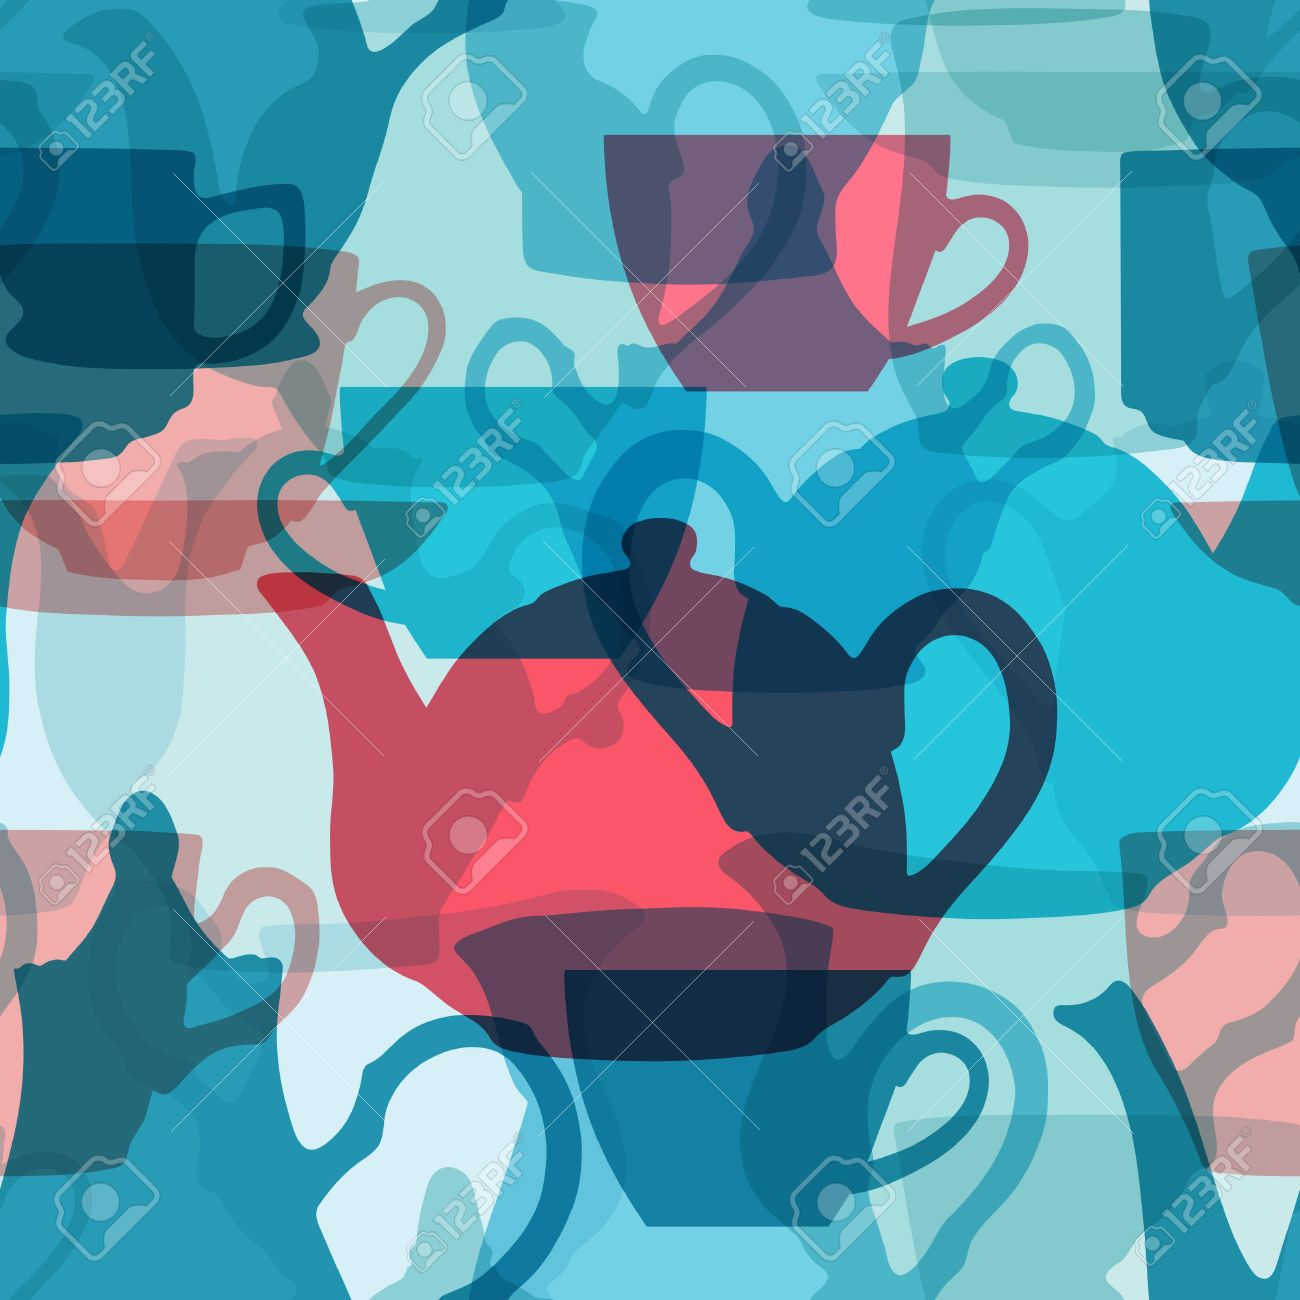 Seamless crockery background with transparency effect.   Files included:  - PNG file; - SVG file; - high resolution JPG file.  Does not contain any transparent elements.  service, blue, pink, seamless, background, patten, tile, tile-able, transparency, re Stock Vector - 9322481